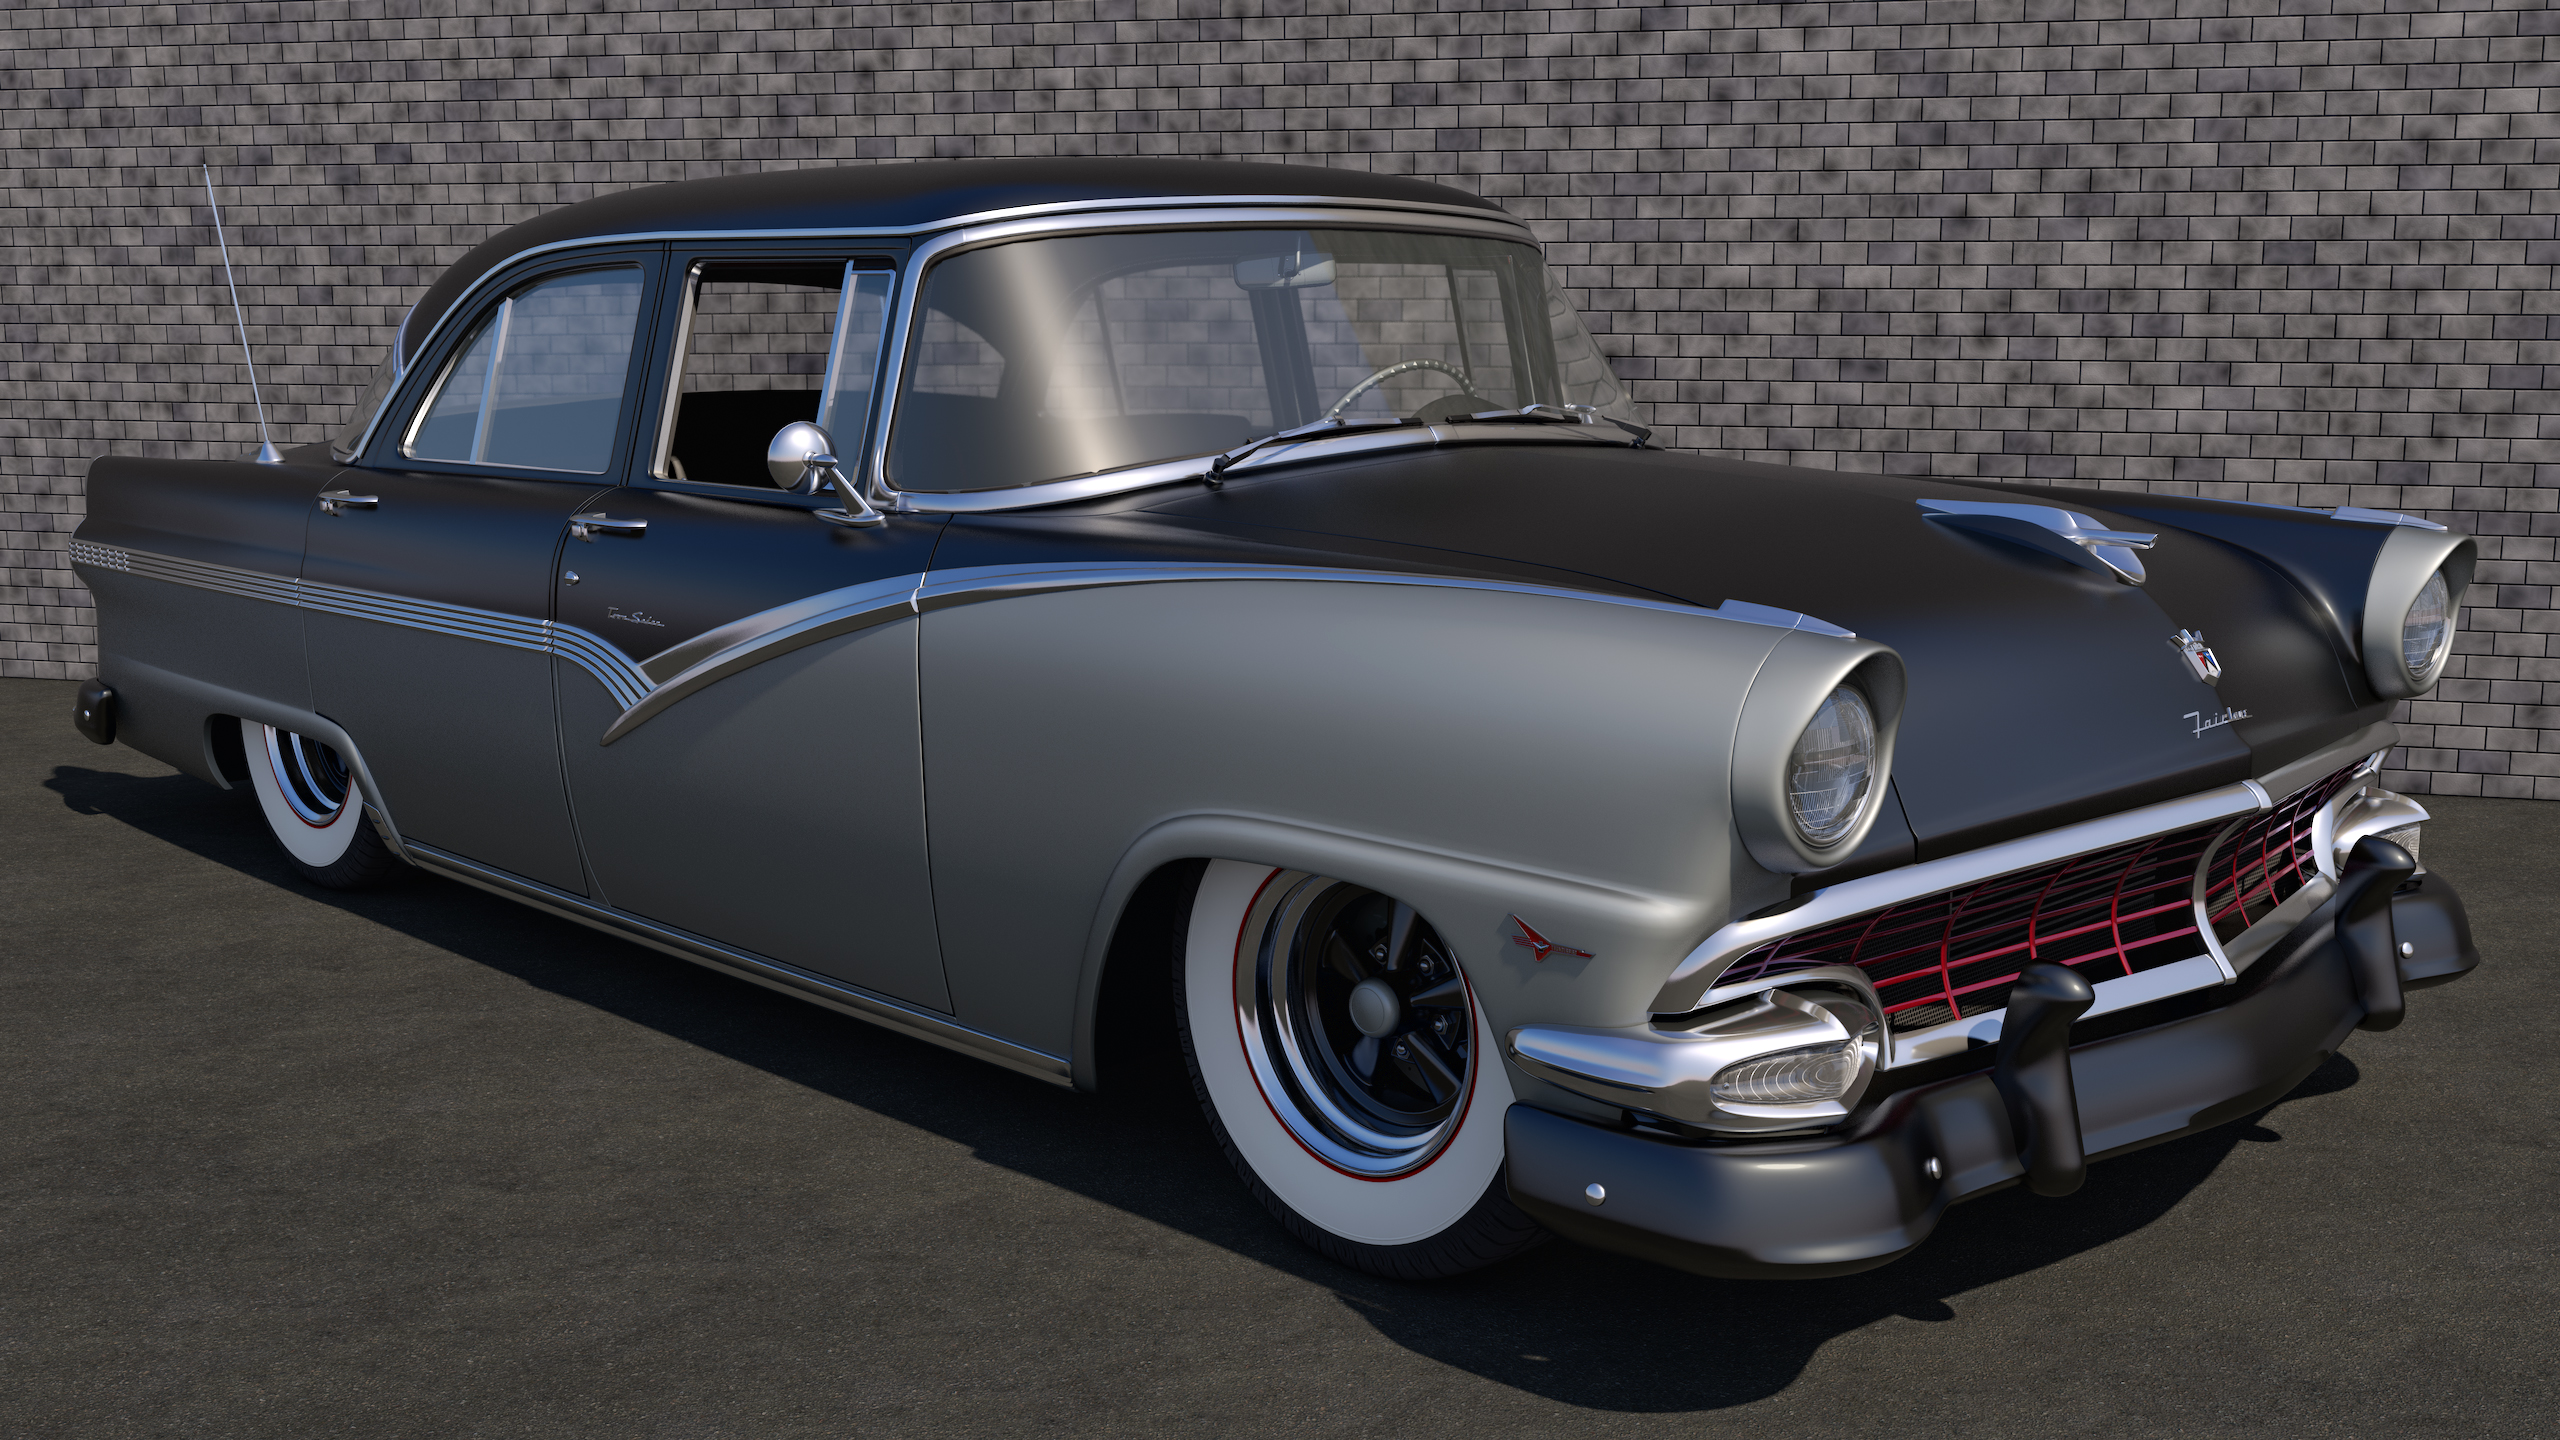 1956 ford fairlane town sedan by samcurry on deviantart for 1956 ford fairlane 4 door